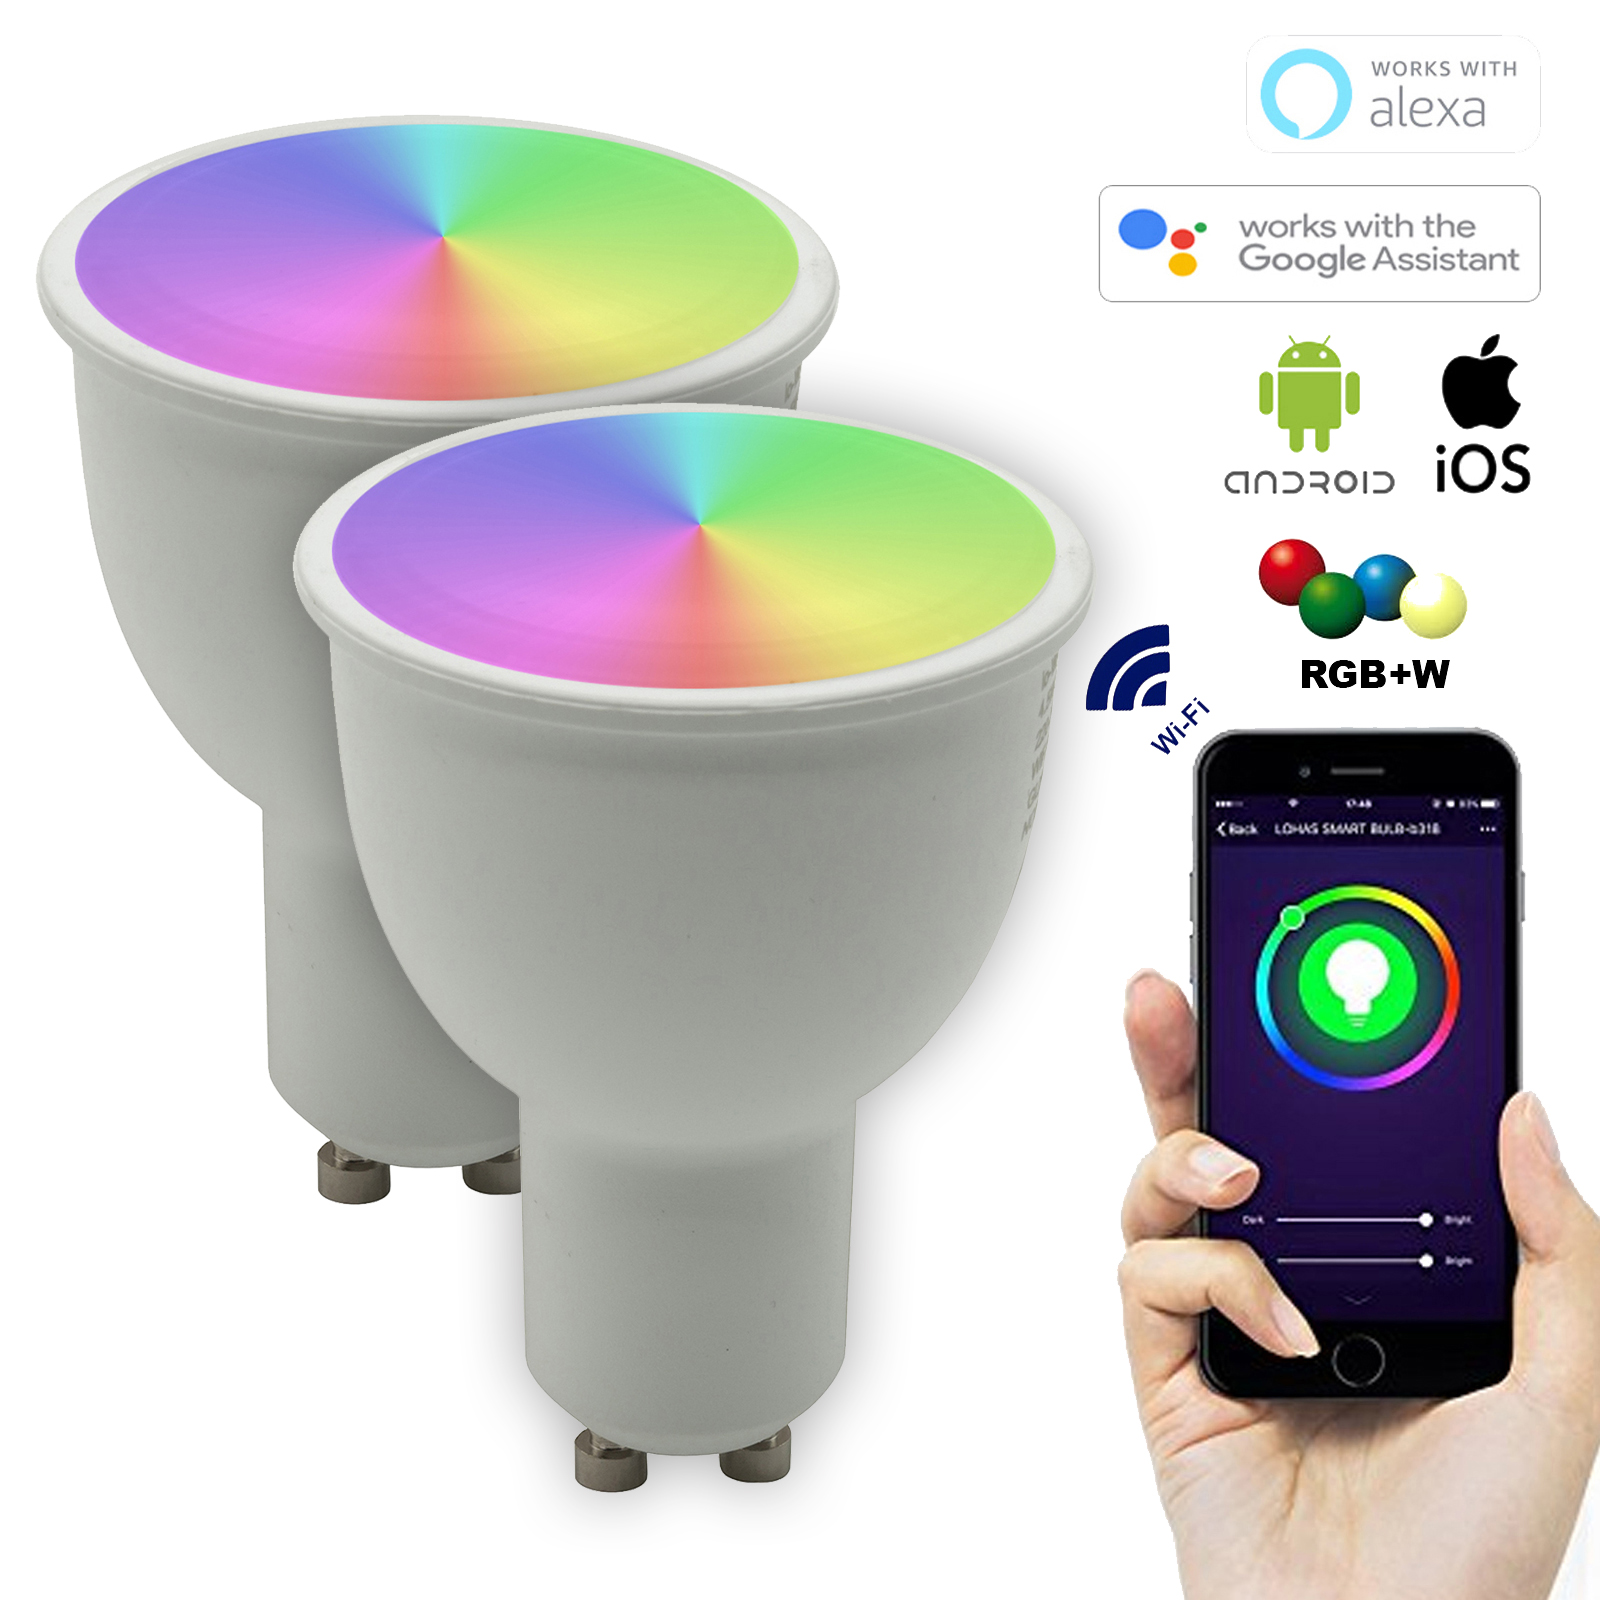 Kit 2 LED spotlights SMART GU10 10W dimmable RGBW + warm light 2700K WiFi does not require HUB compatible Alexa IFTTT smartphone Google Home Android iOS